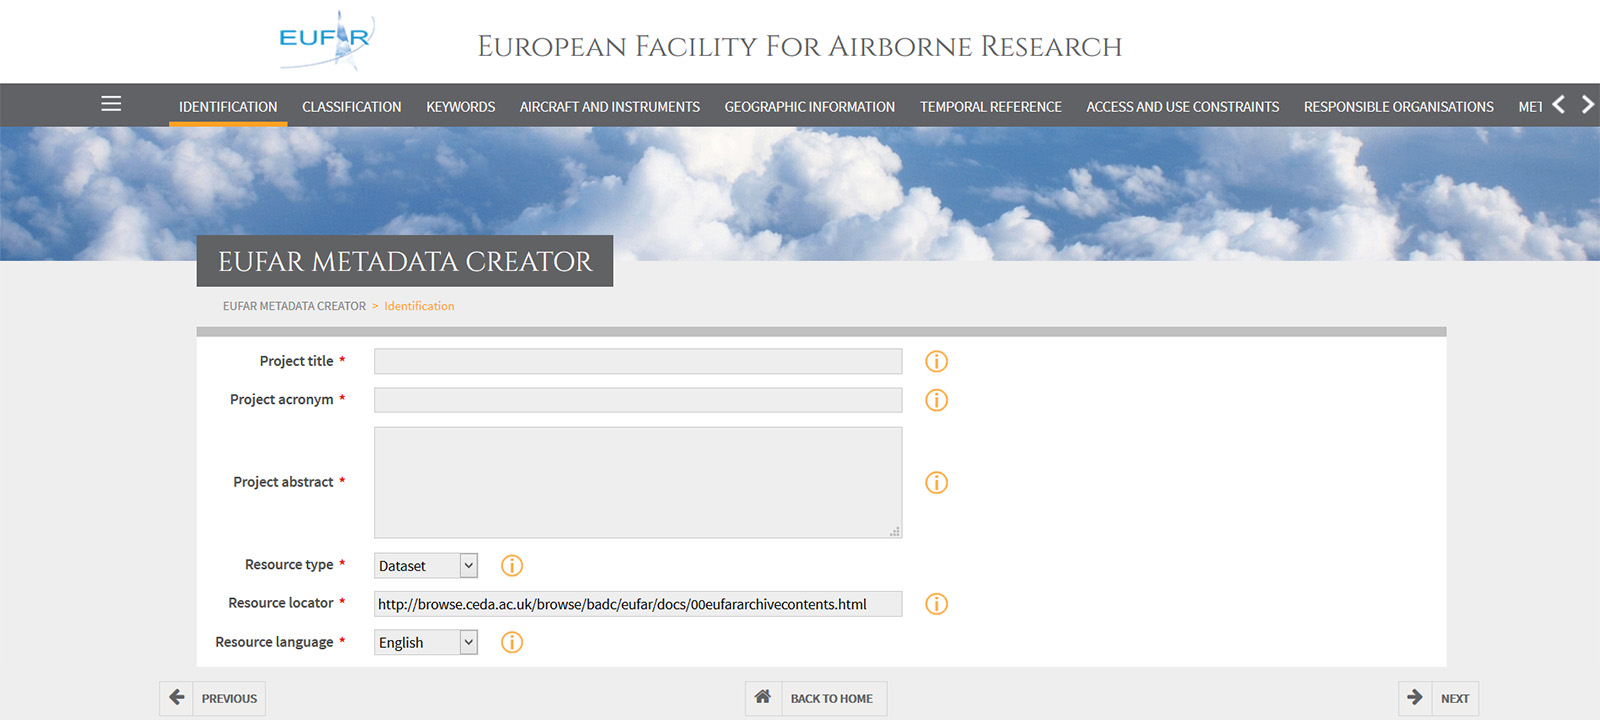 EUFAR tools to create INSPIRE metadata and flight reports